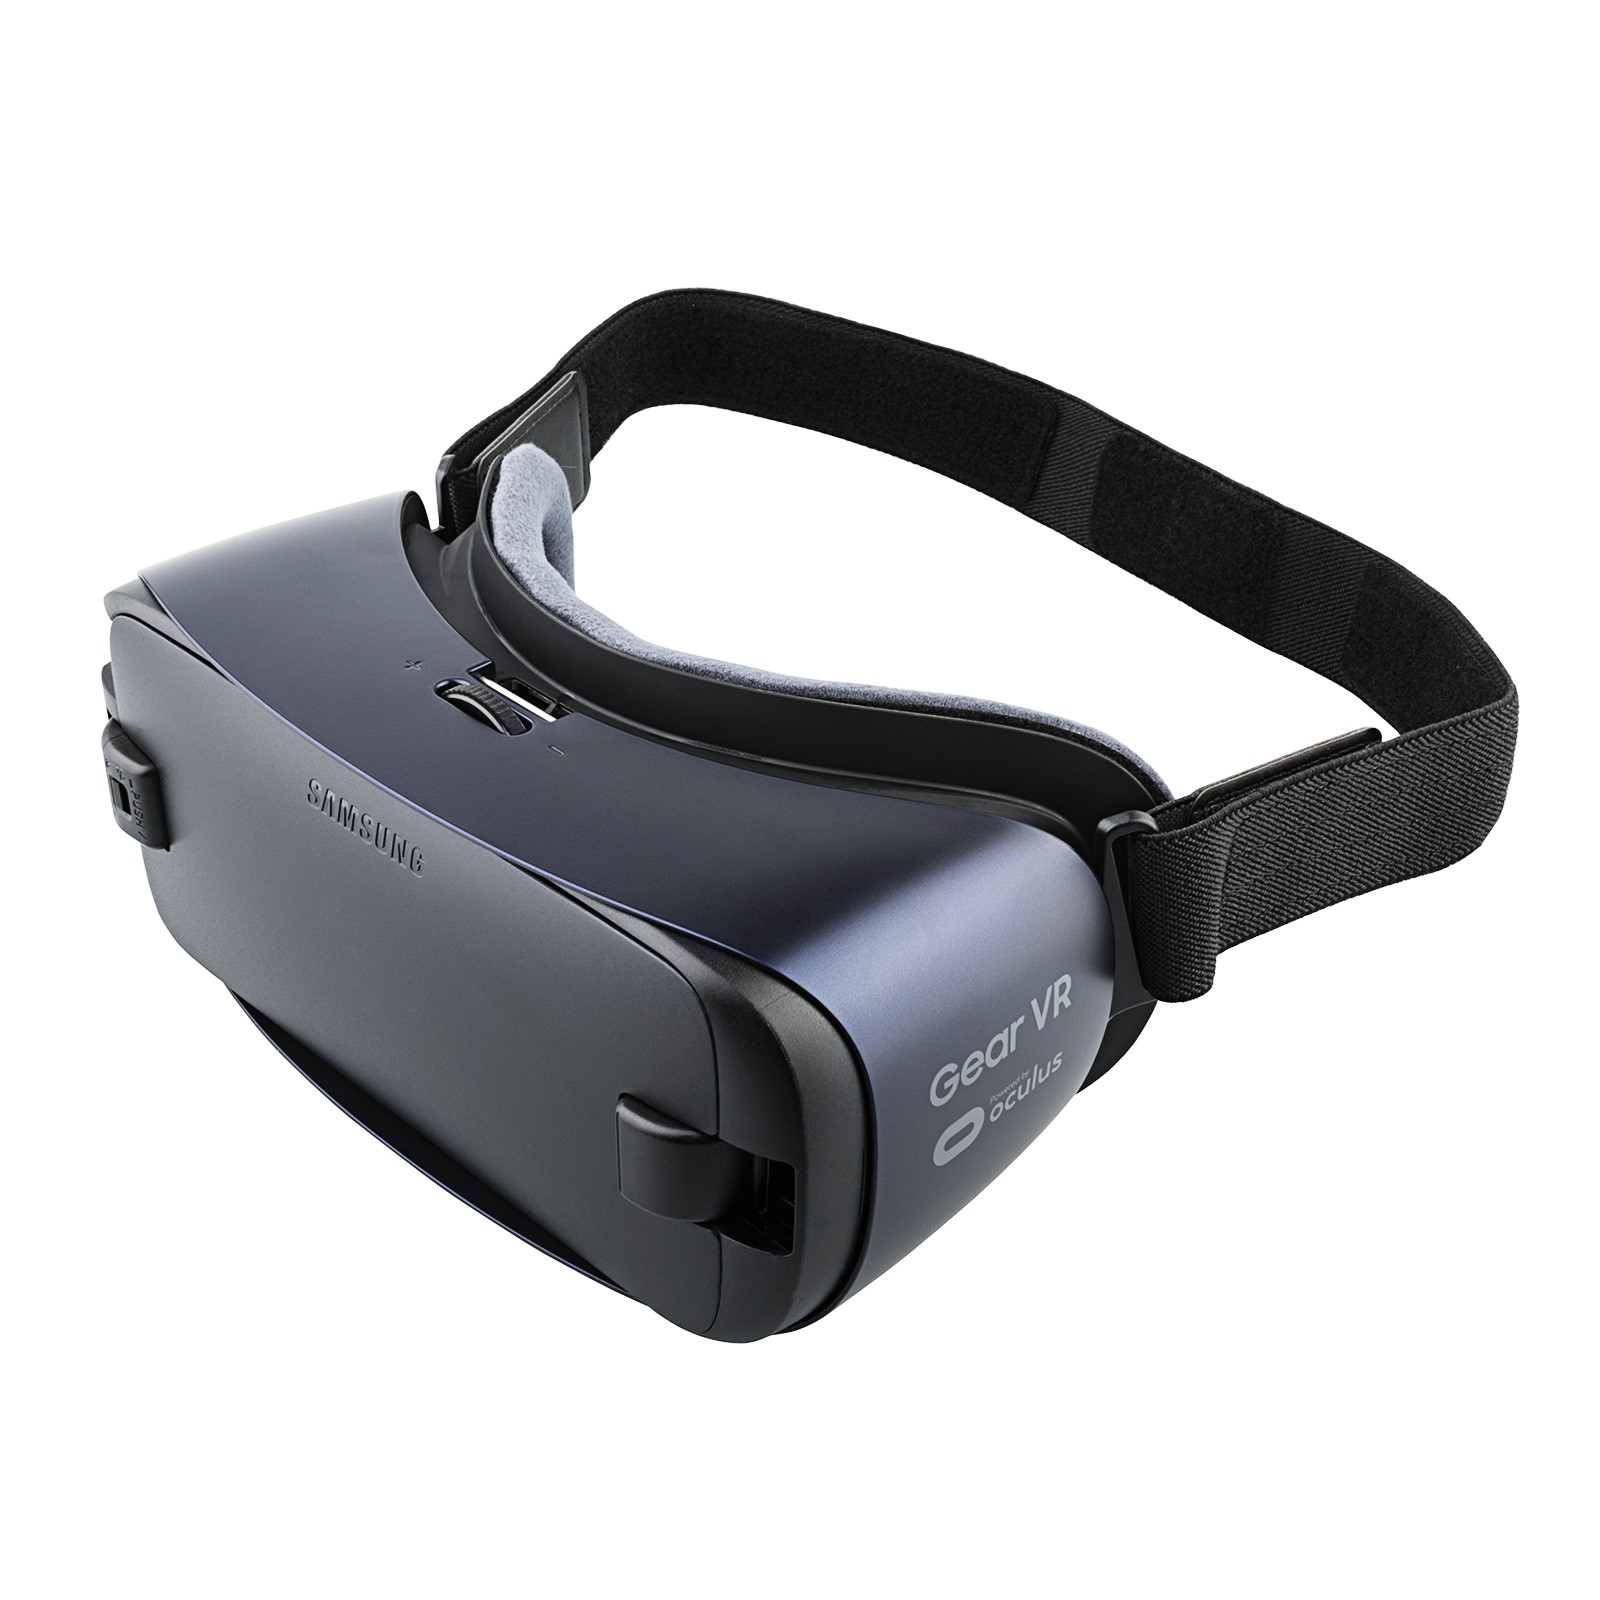 Samsung Gear VR Virtual Reality Headset SAM-GEARVR2-A2